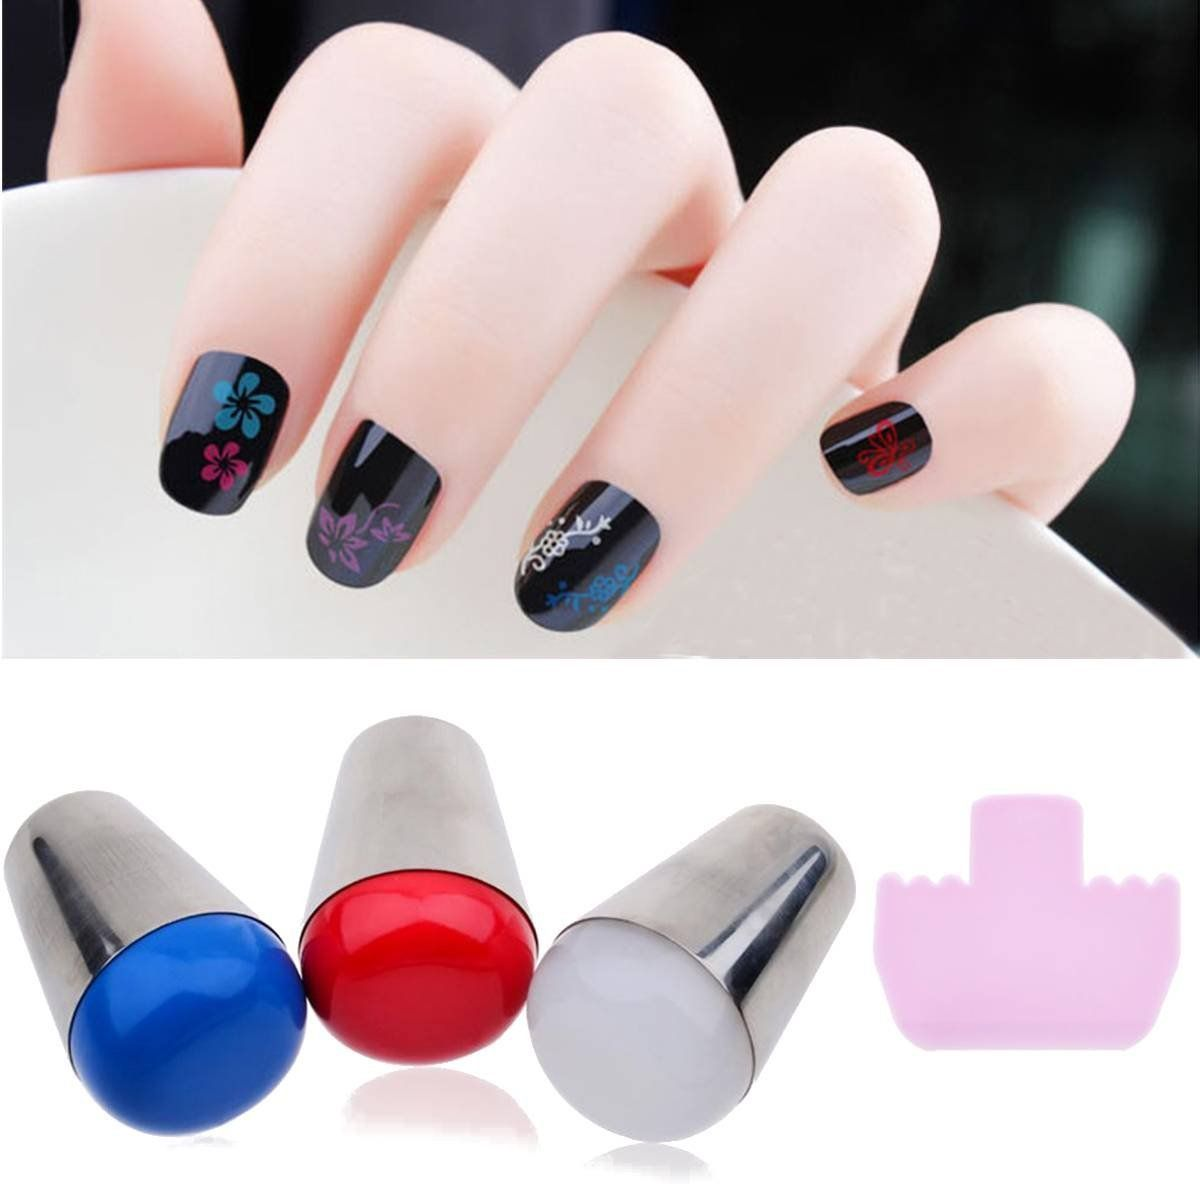 Dancingnail 1pc 4cm Nail Art Big Stamper Marshmallow Round Clear Red Stamp Stamping Tool This Is An Amazon Affiliate Link Nail Stamper Manicure Round Nails